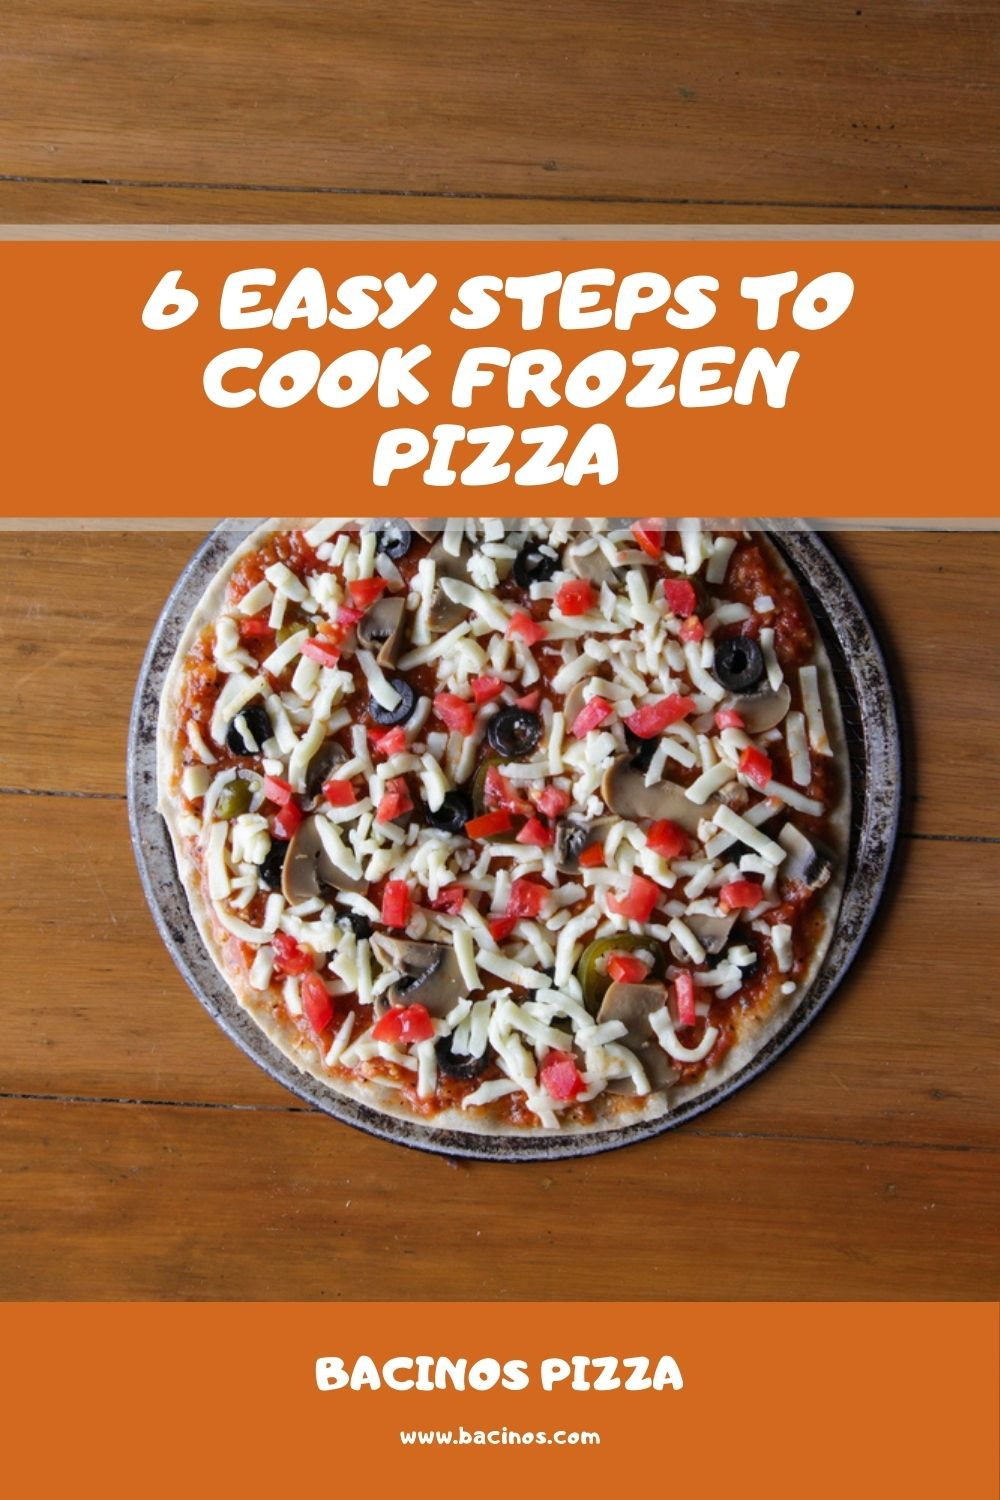 6 Easy Steps to Cook Frozen Pizza 1